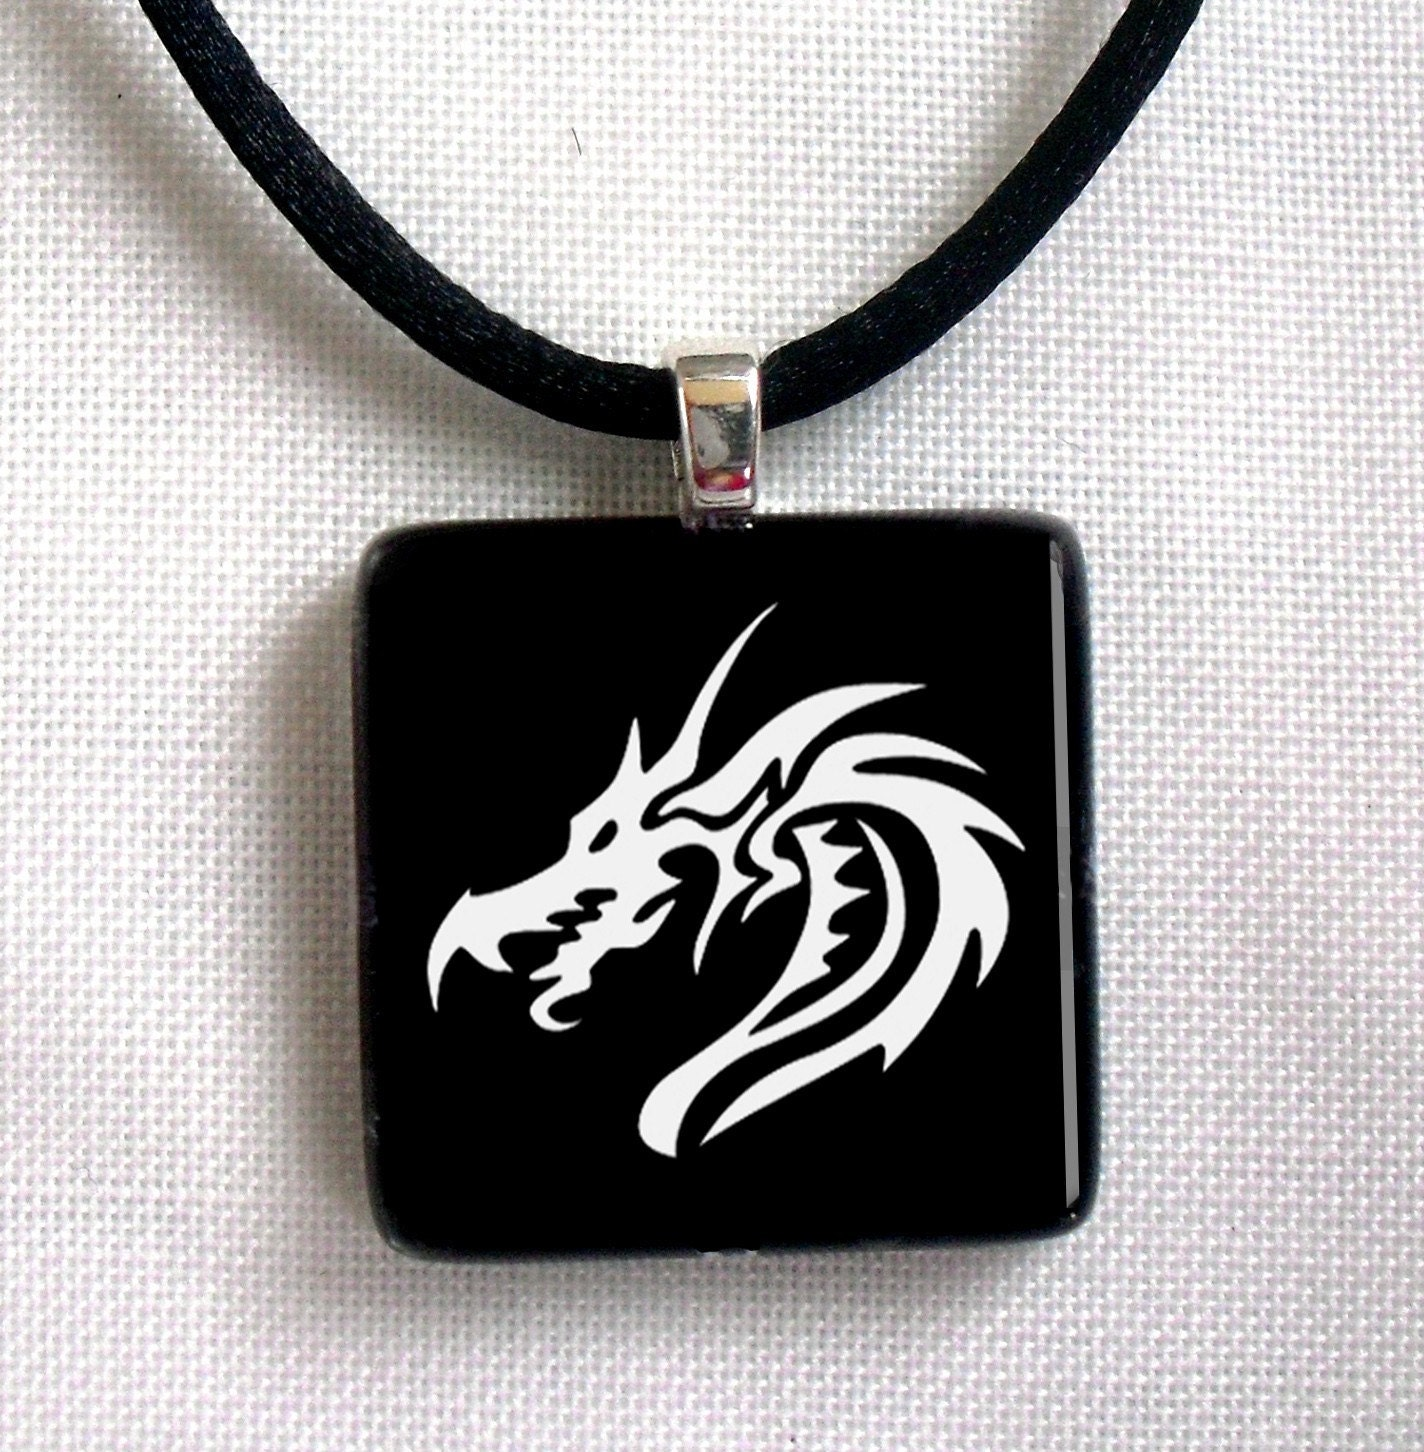 Chinese dragon, 1 inch Square Glass Tile Art Photo Pendant (with Necklace Gift)